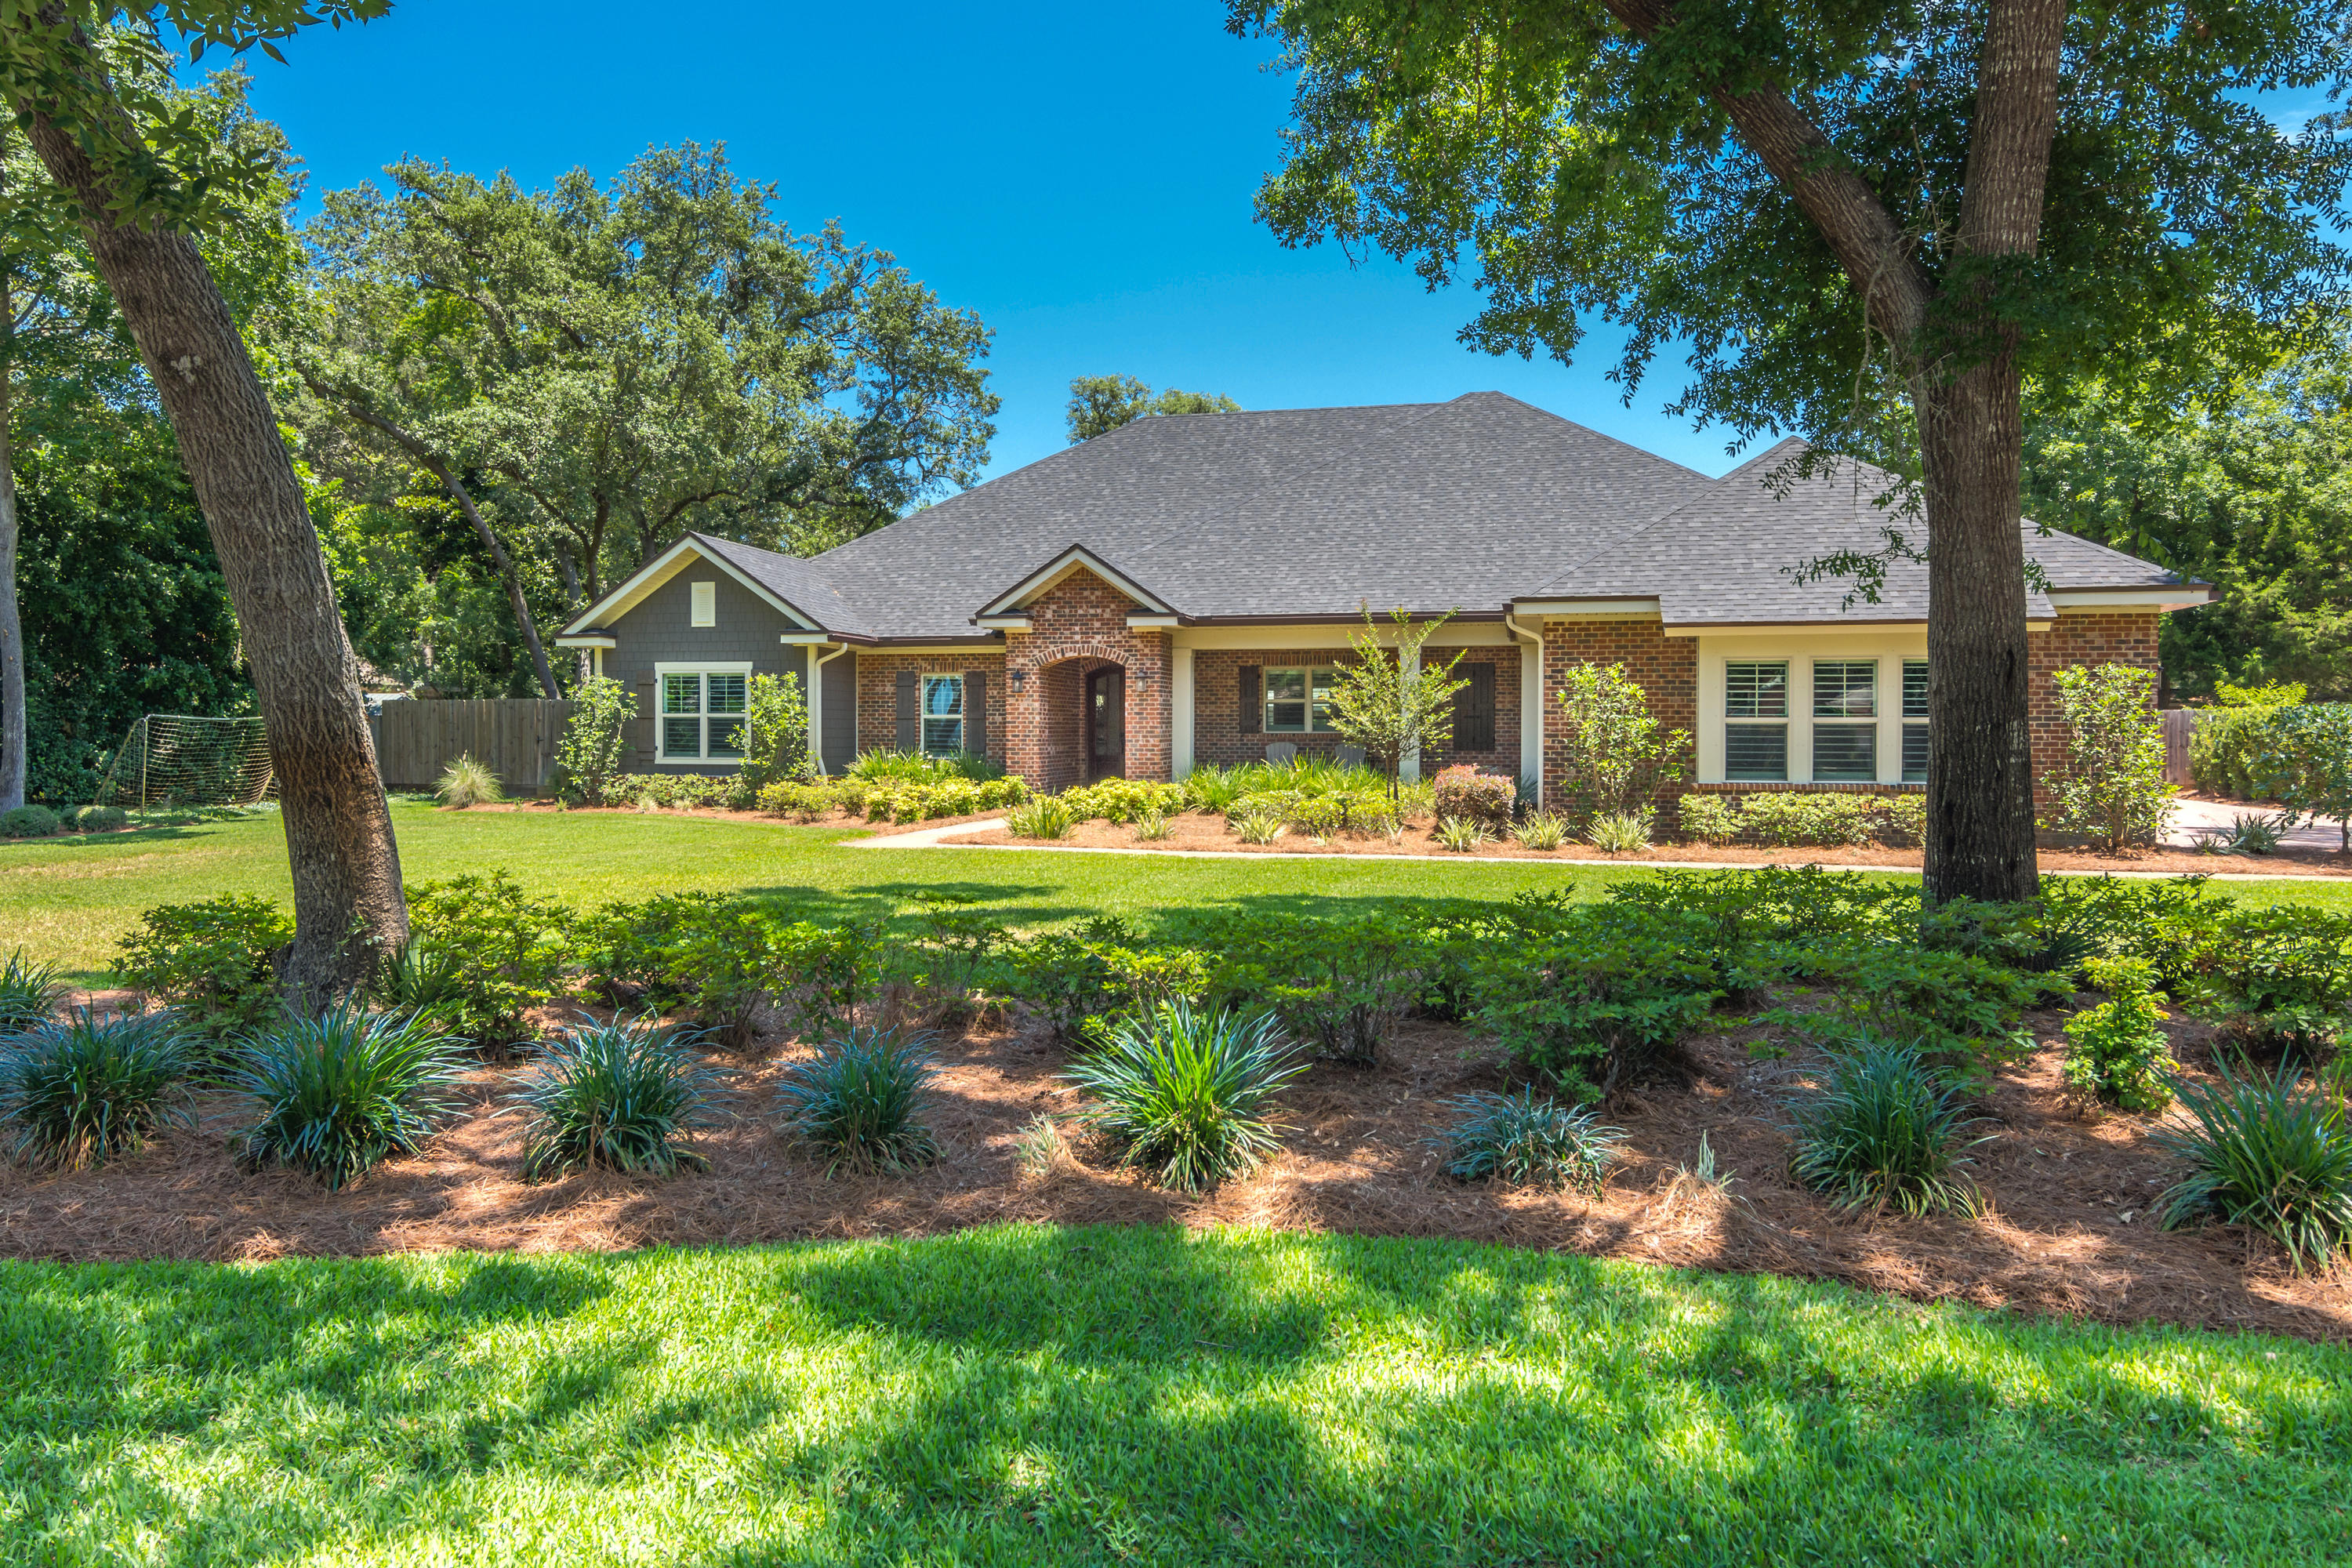 932 W Lido Circle, Niceville, Florida